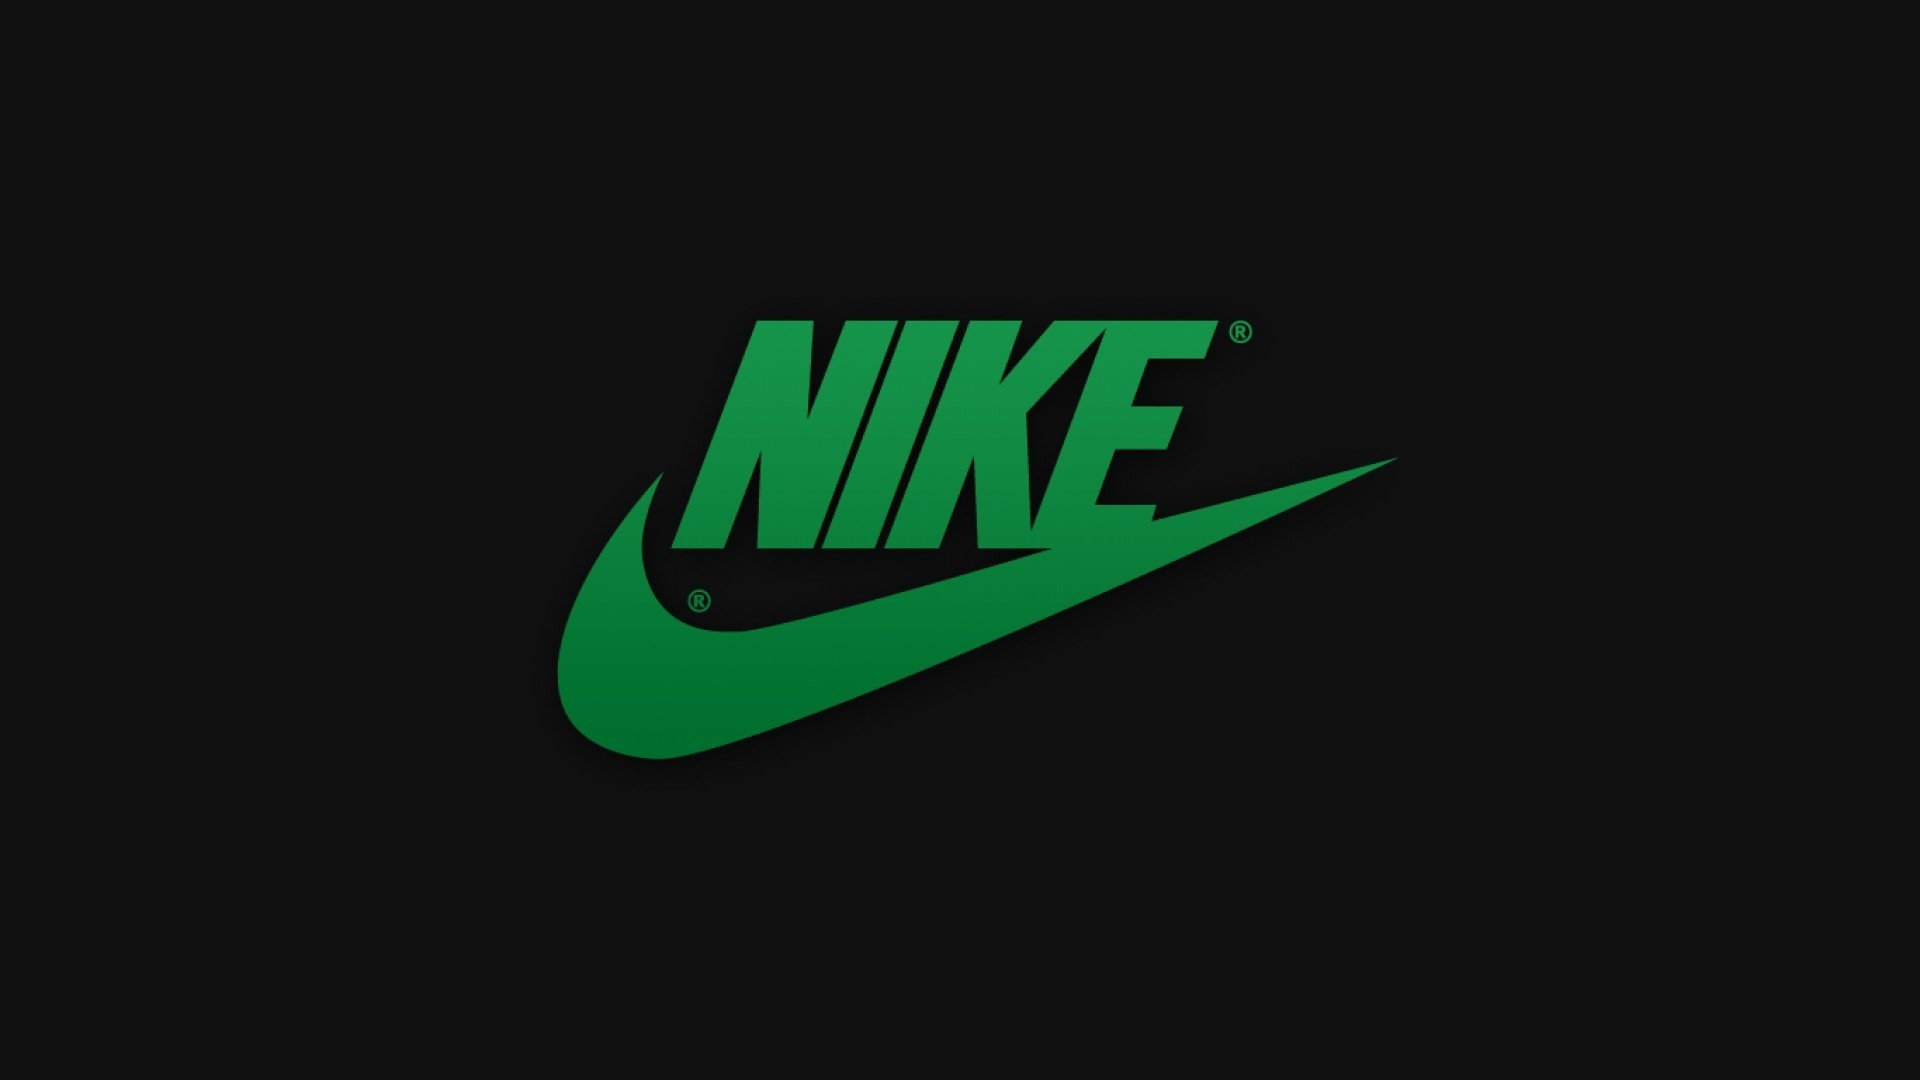 nike logo wallpaper hd 2018 ·①